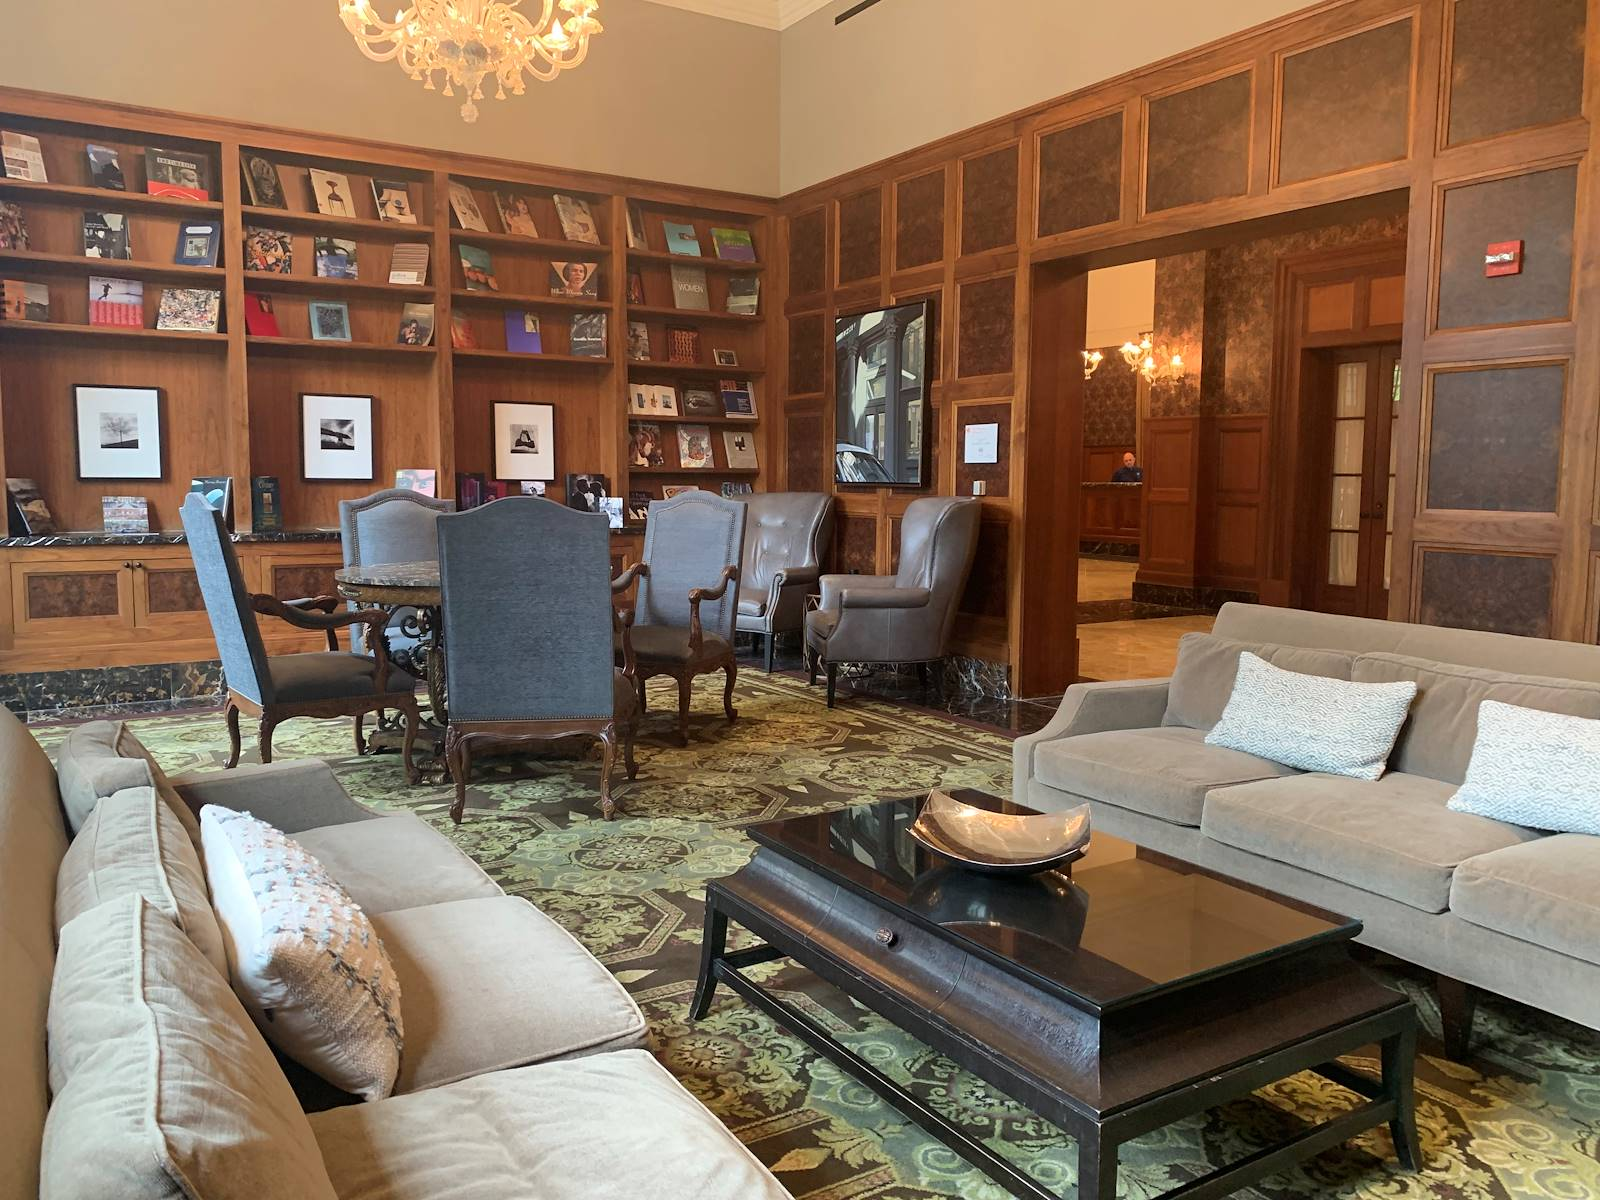 Library of Royal Park Hotel in Rochester Michigan